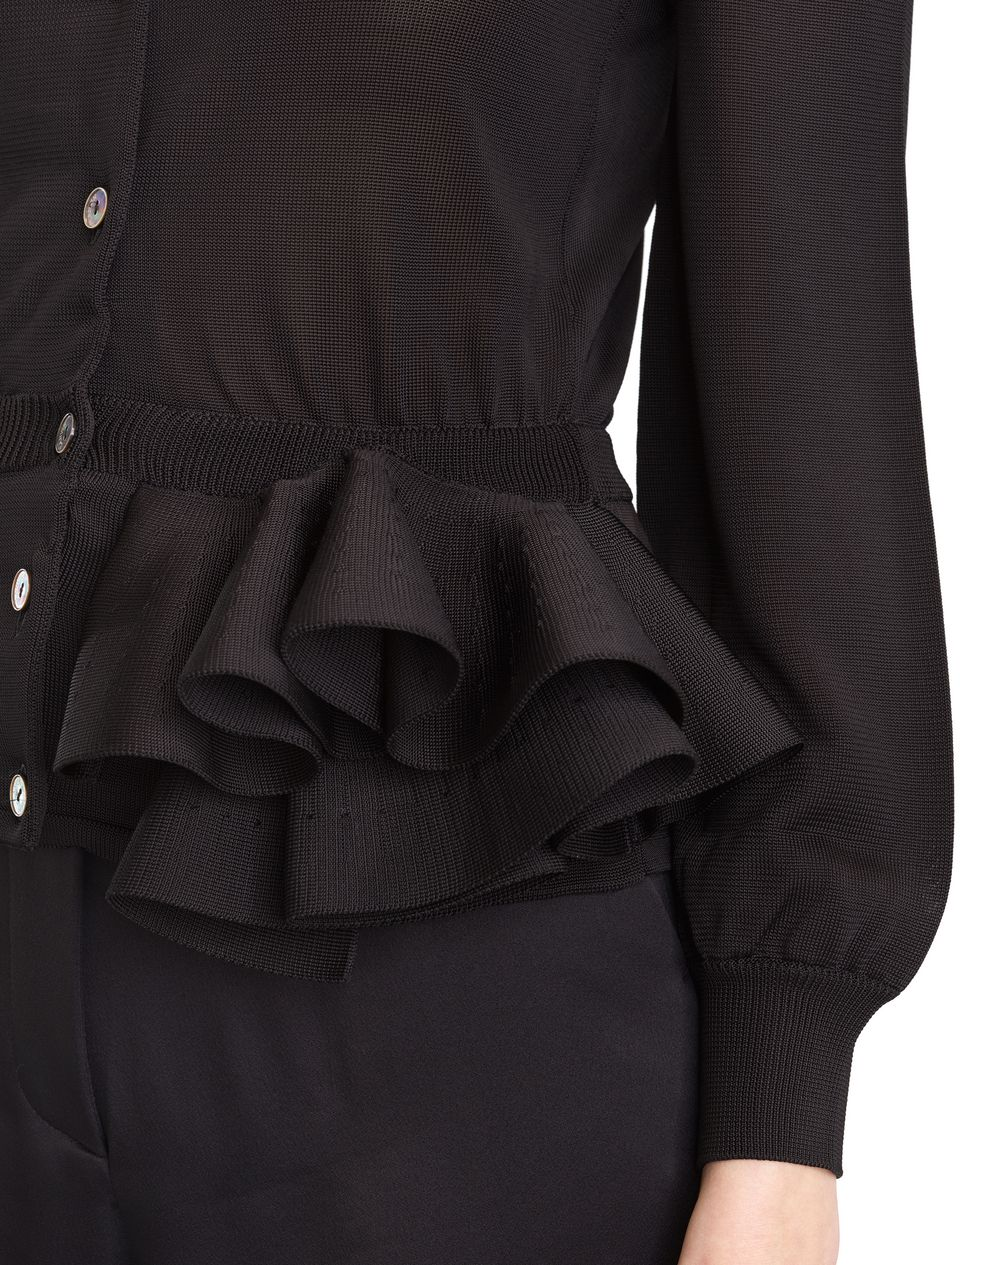 KNIT AND FRILL JACKET - Lanvin